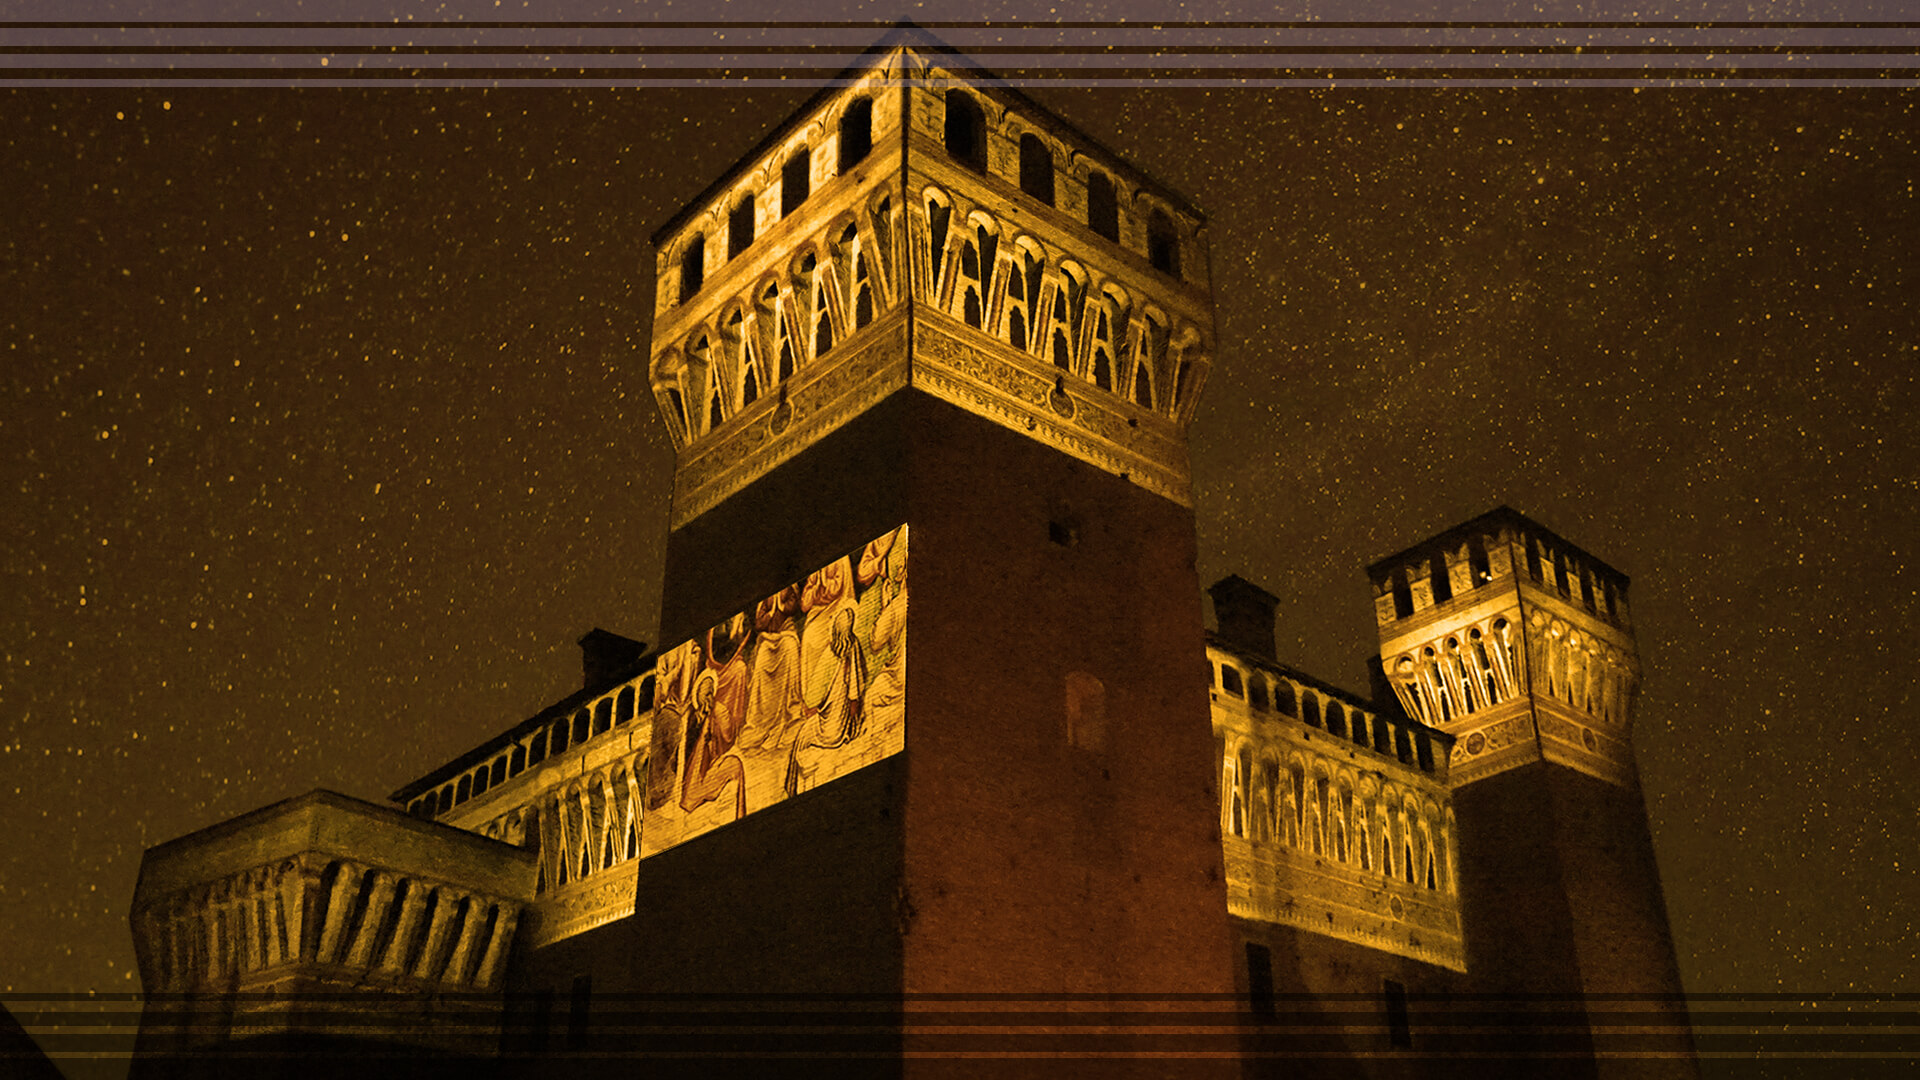 Projection mapping on ancient architectures